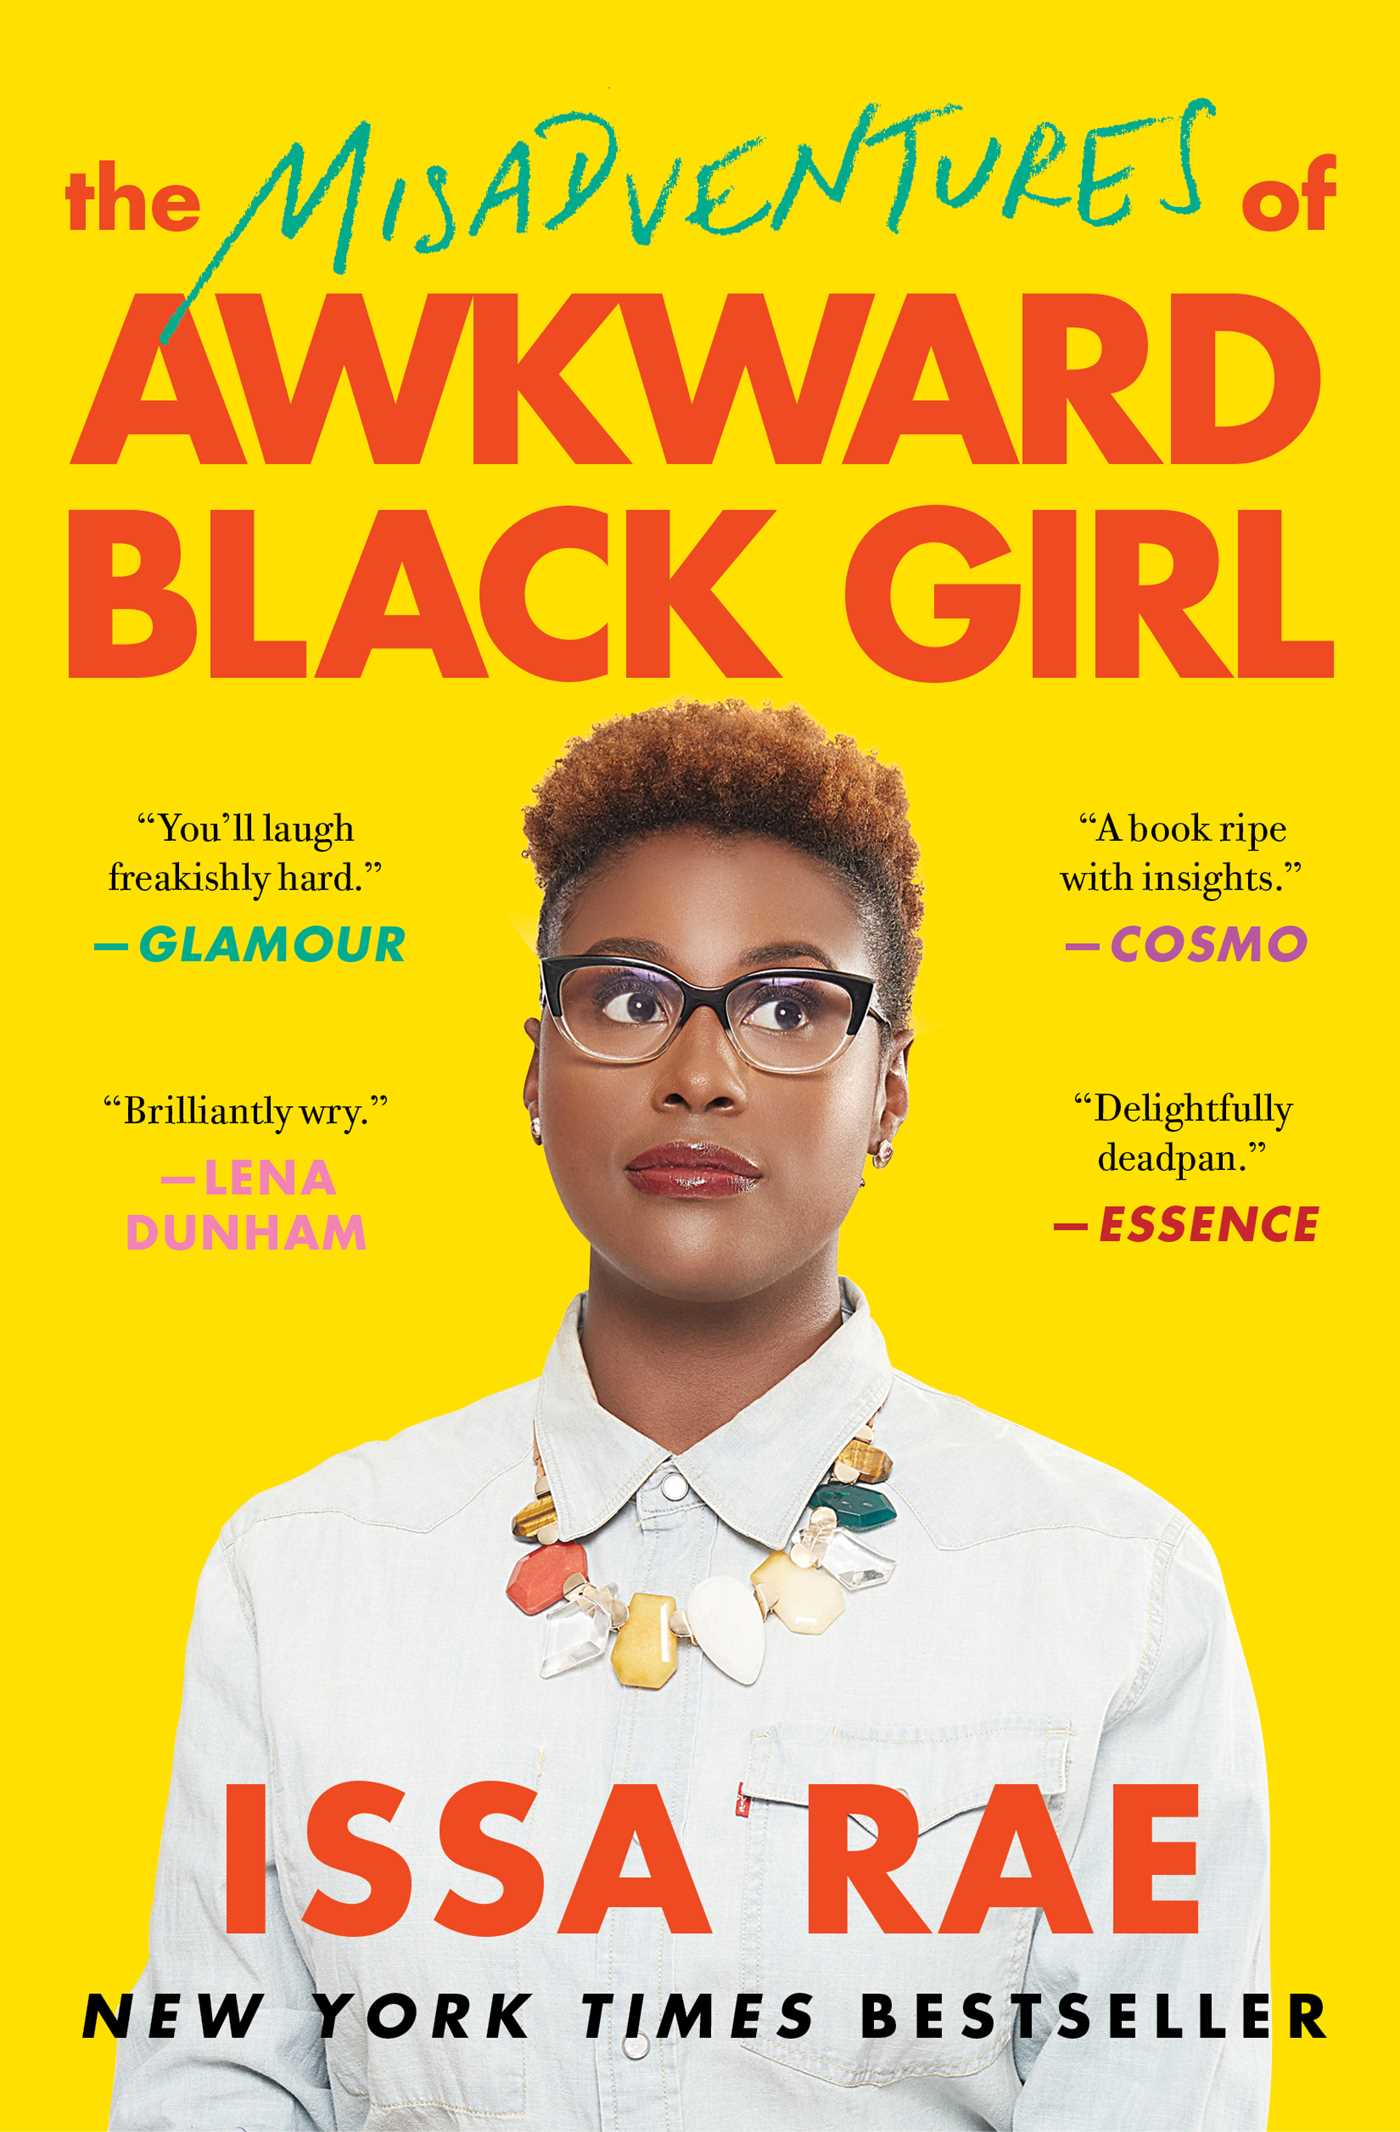 8. 'The Misadventures of Awkward Black Girl' by Issa Rae